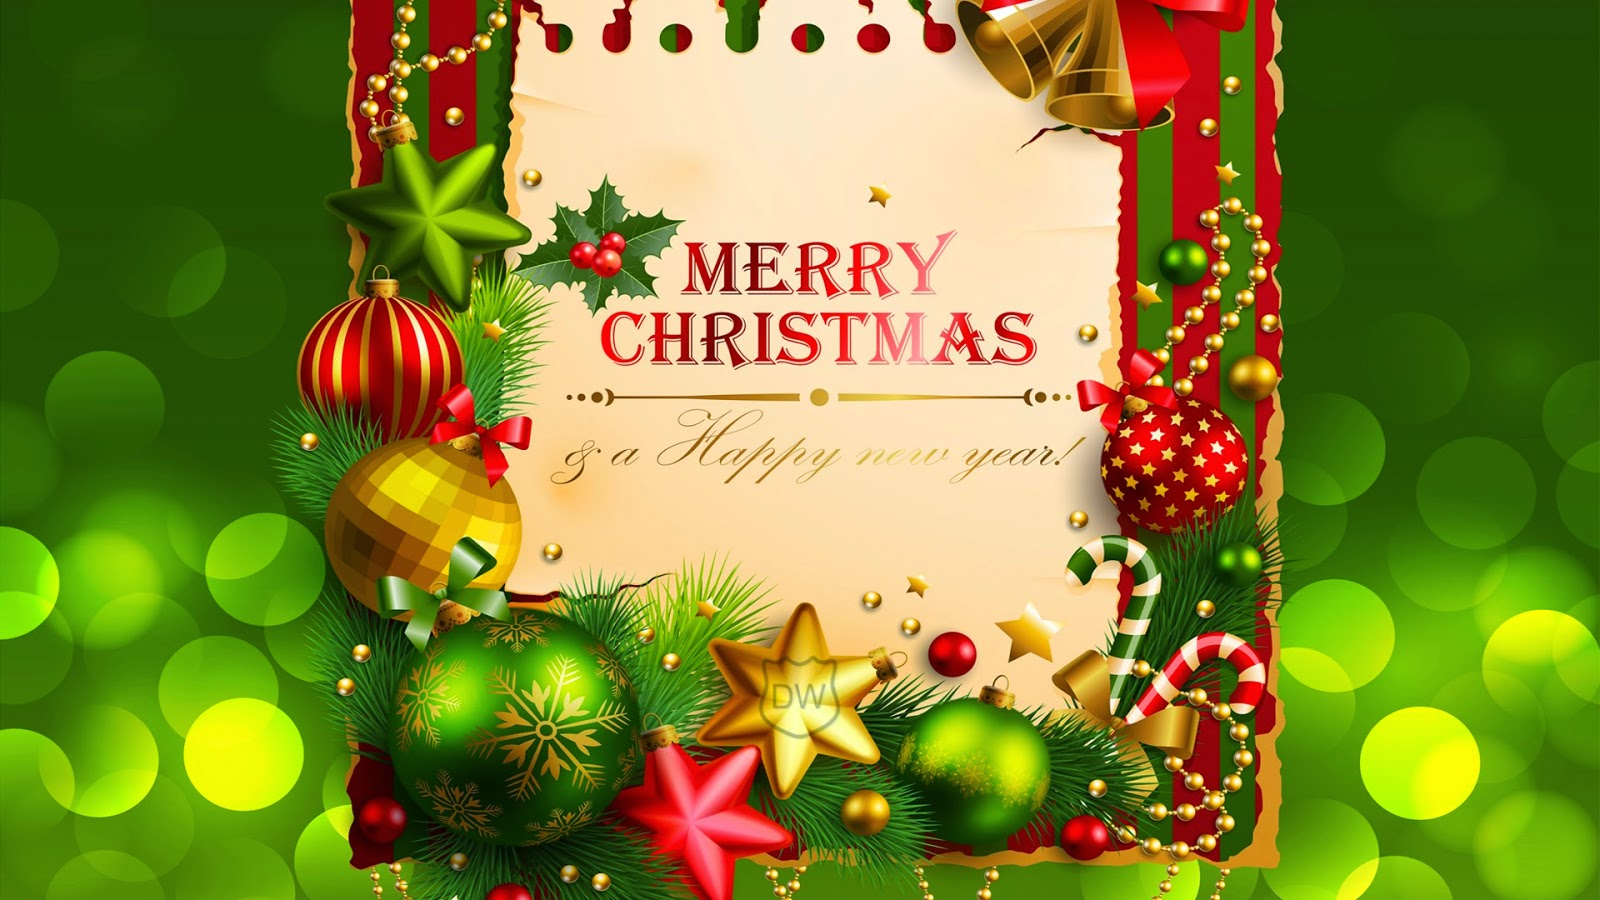 Superb Merry Christmas Happy New Year 2015 Wallpapers 1600x900